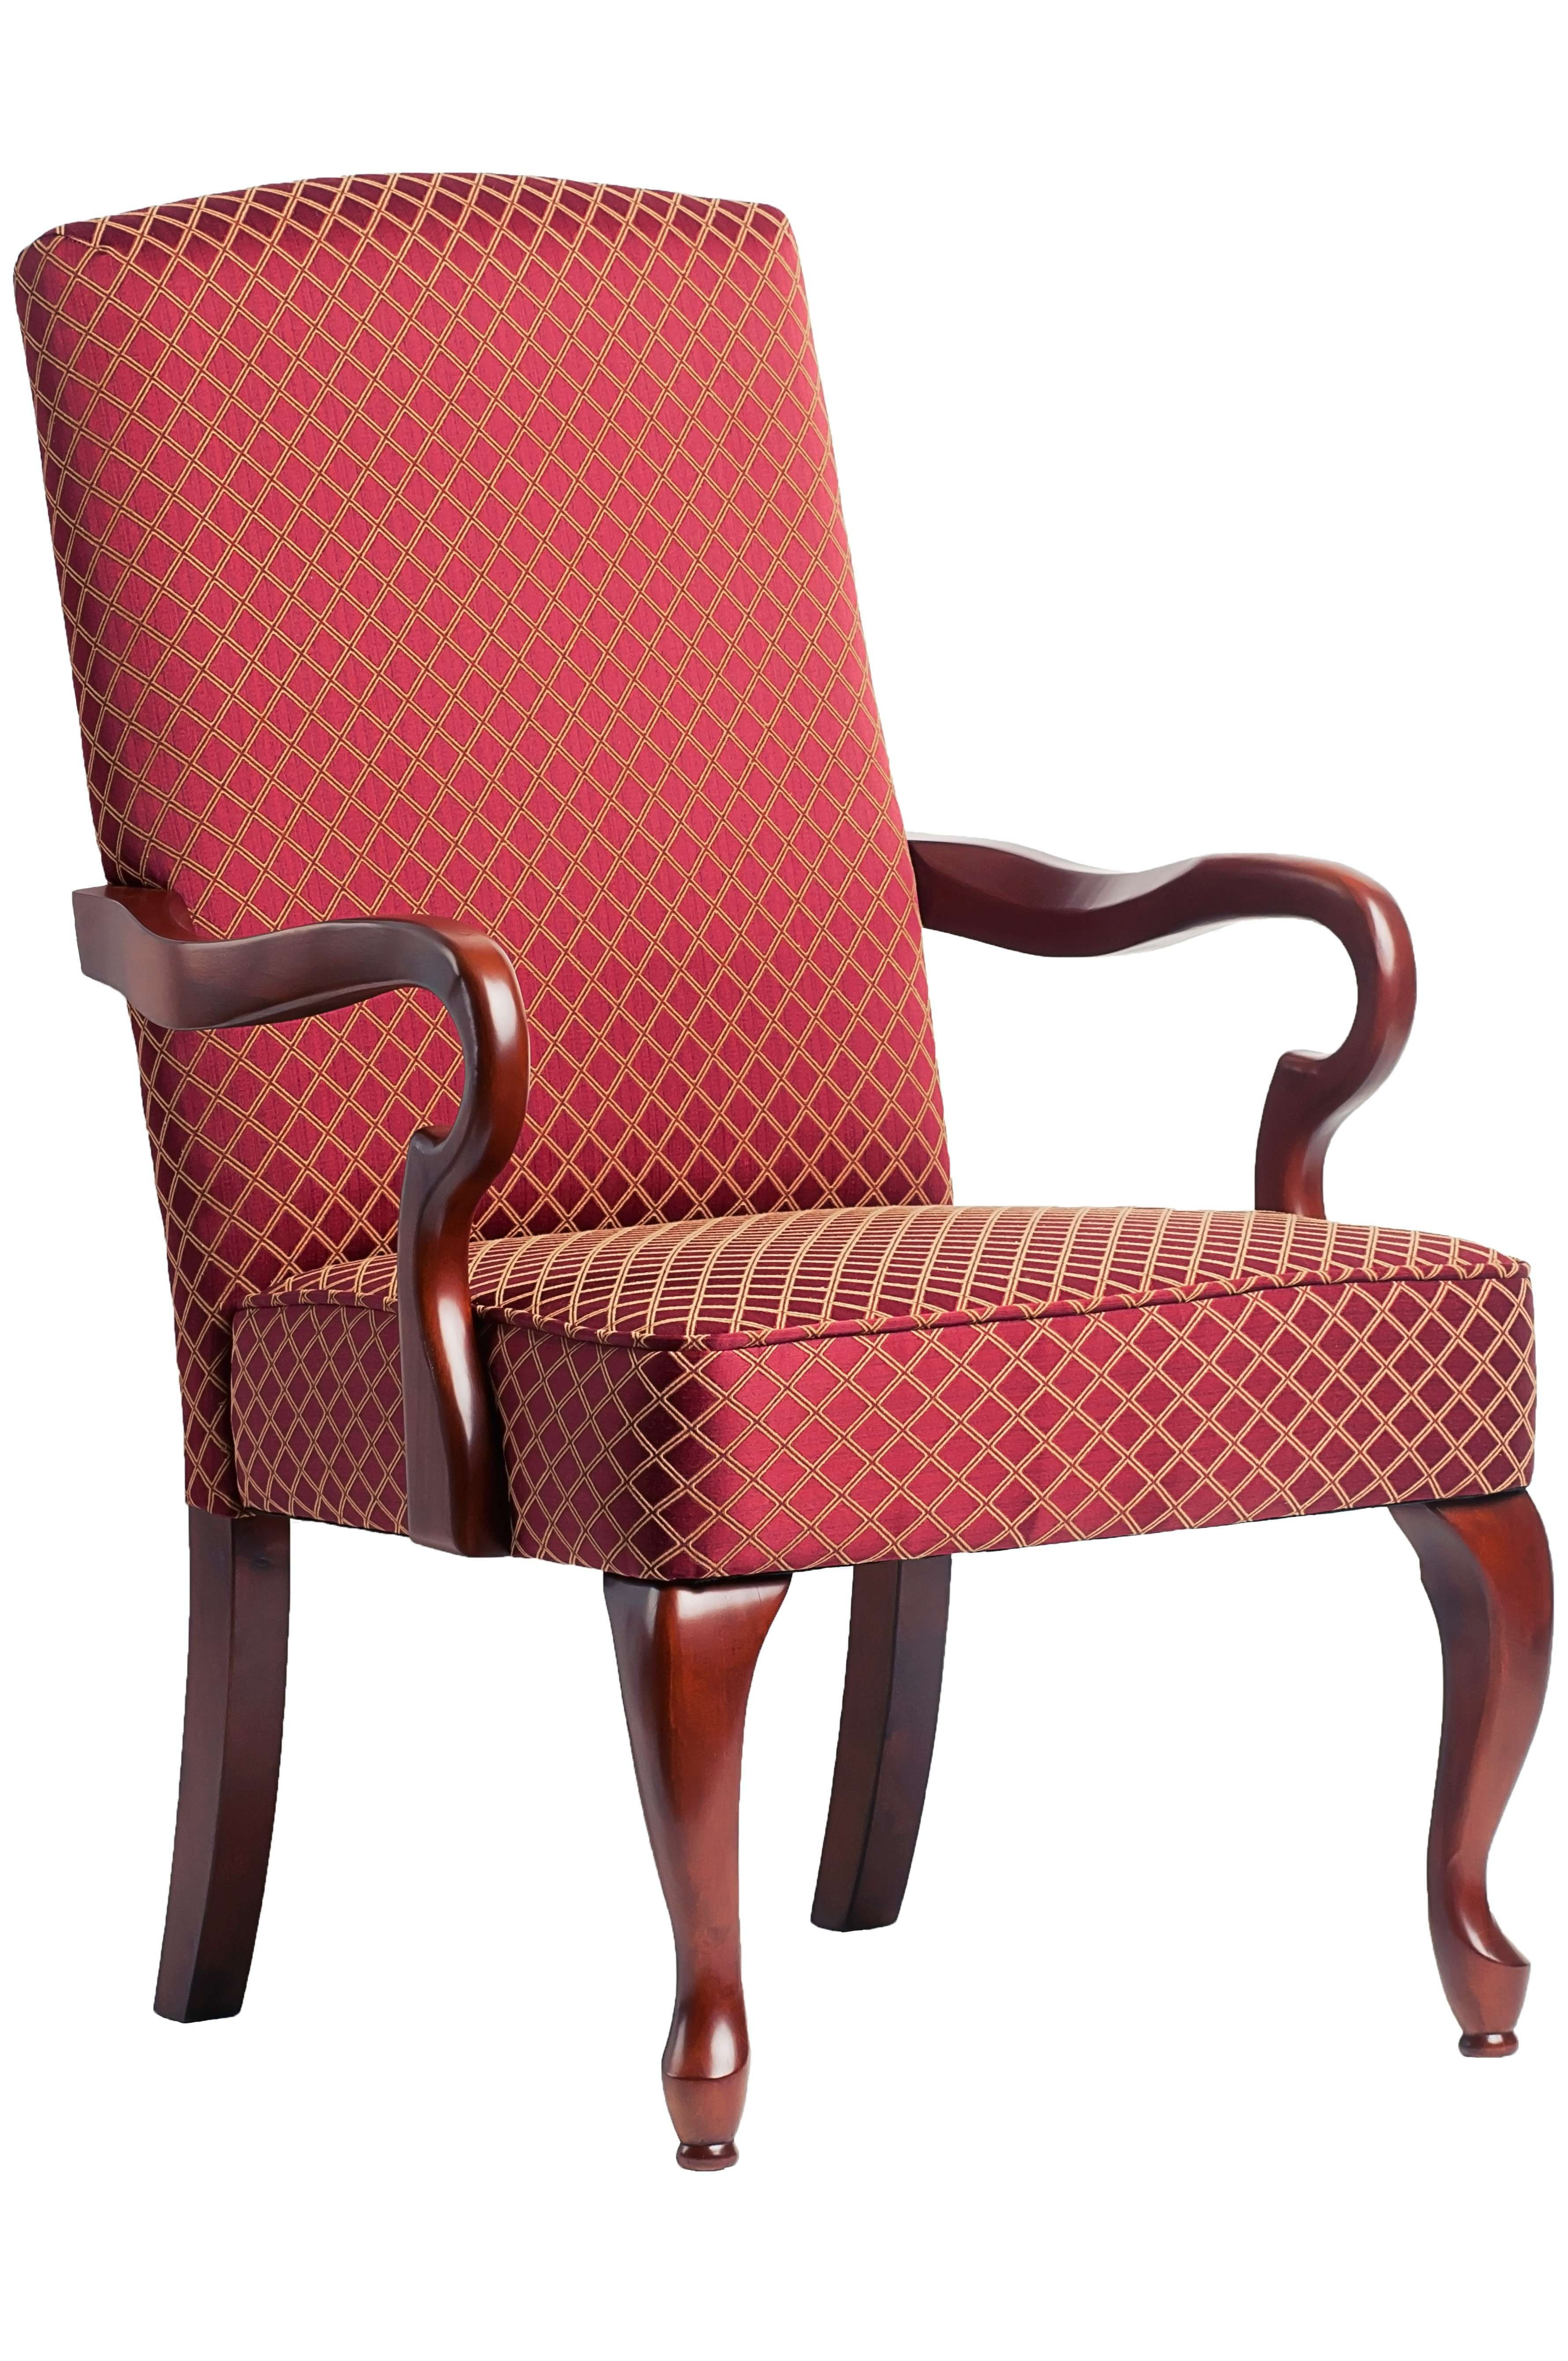 Comfort Pointe Derby Red Gooseneck Arm Chair 6700 Red Goedekers